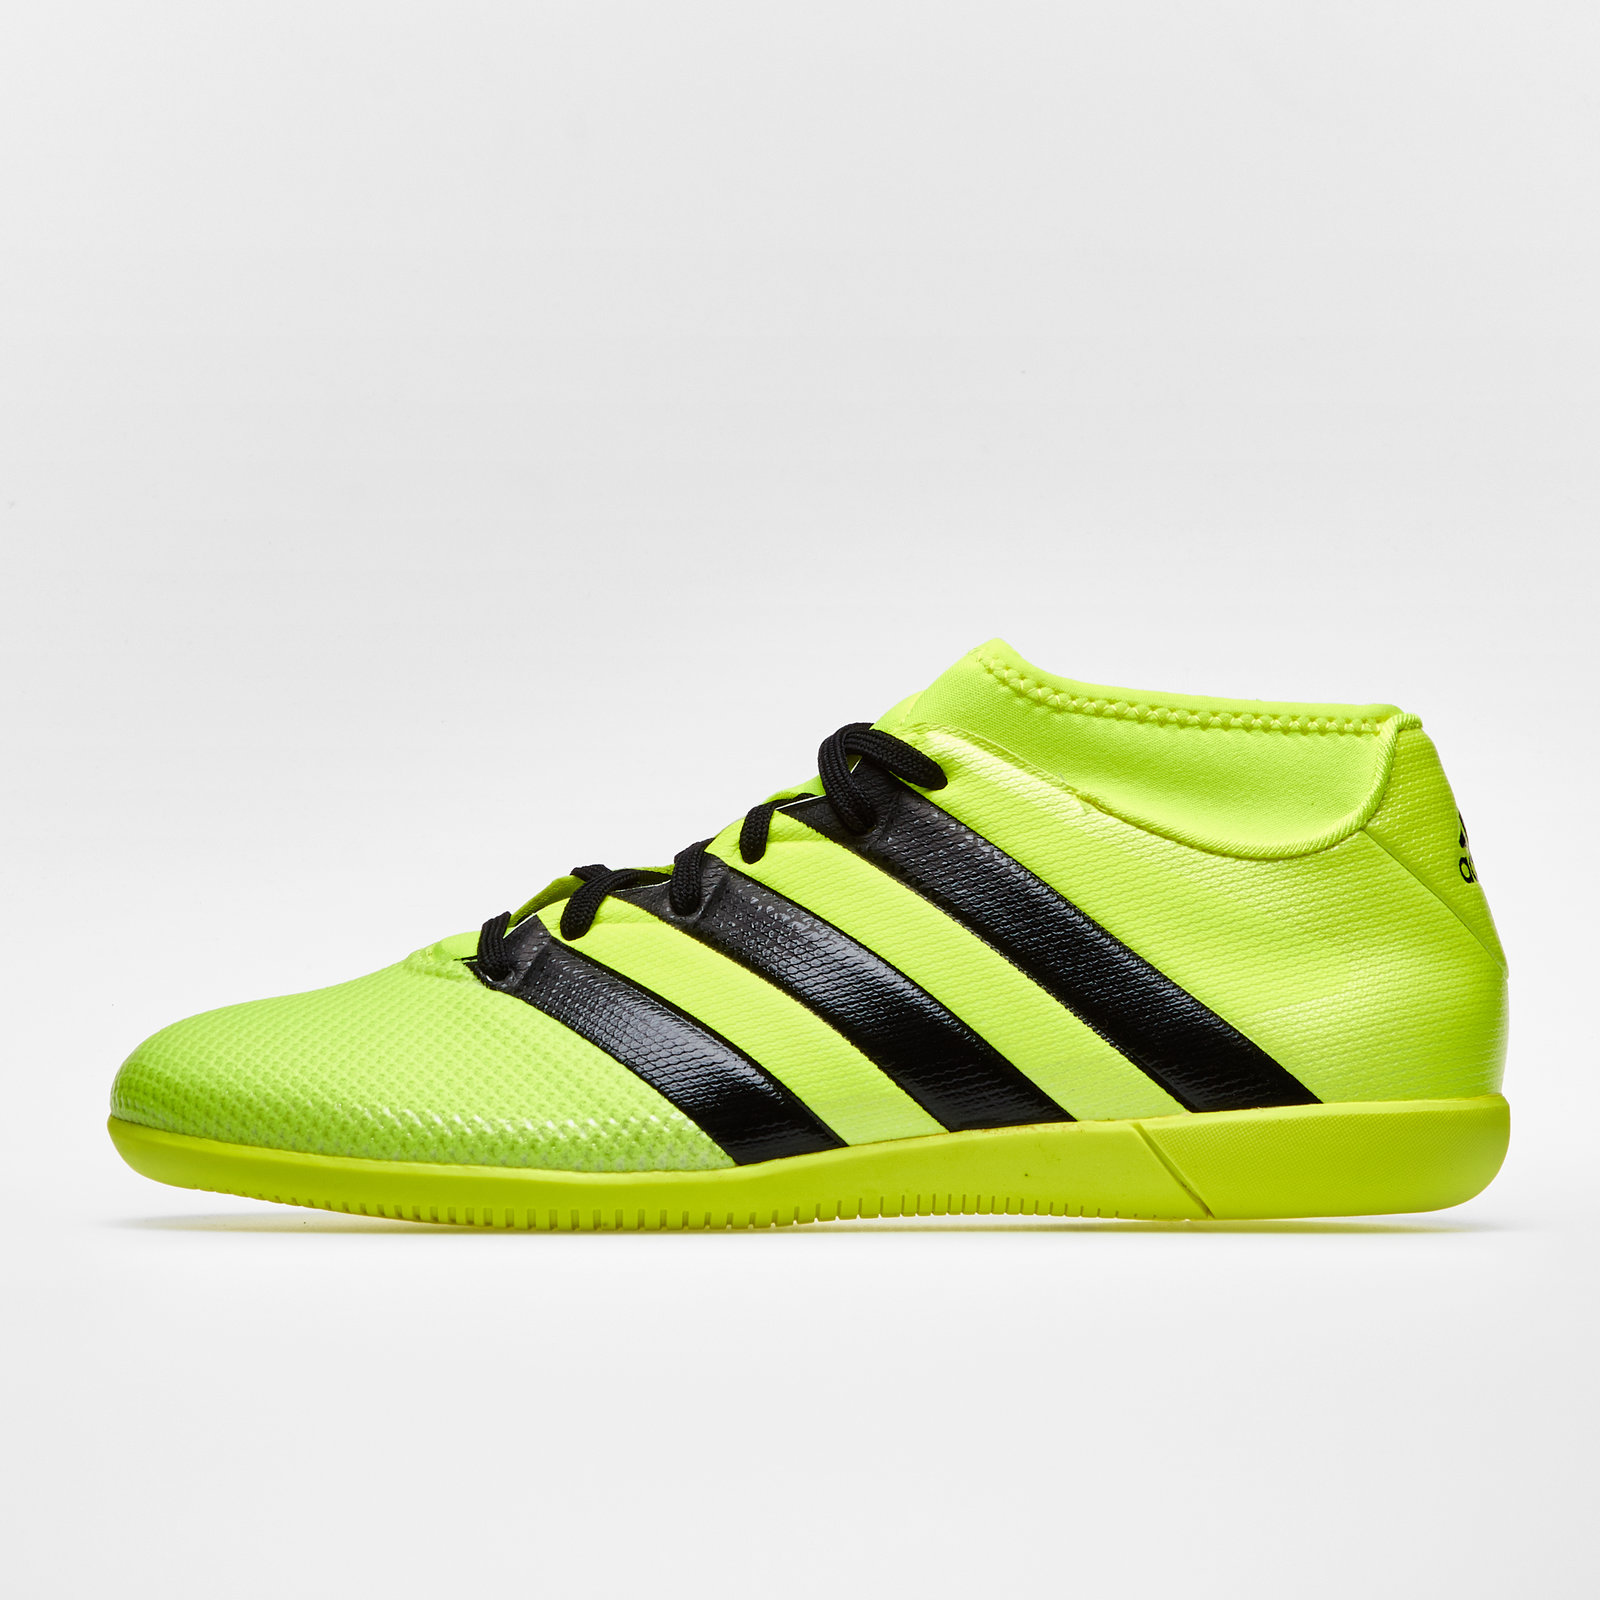 Image of Ace 16.3 Primemesh Indoor Football Trainers